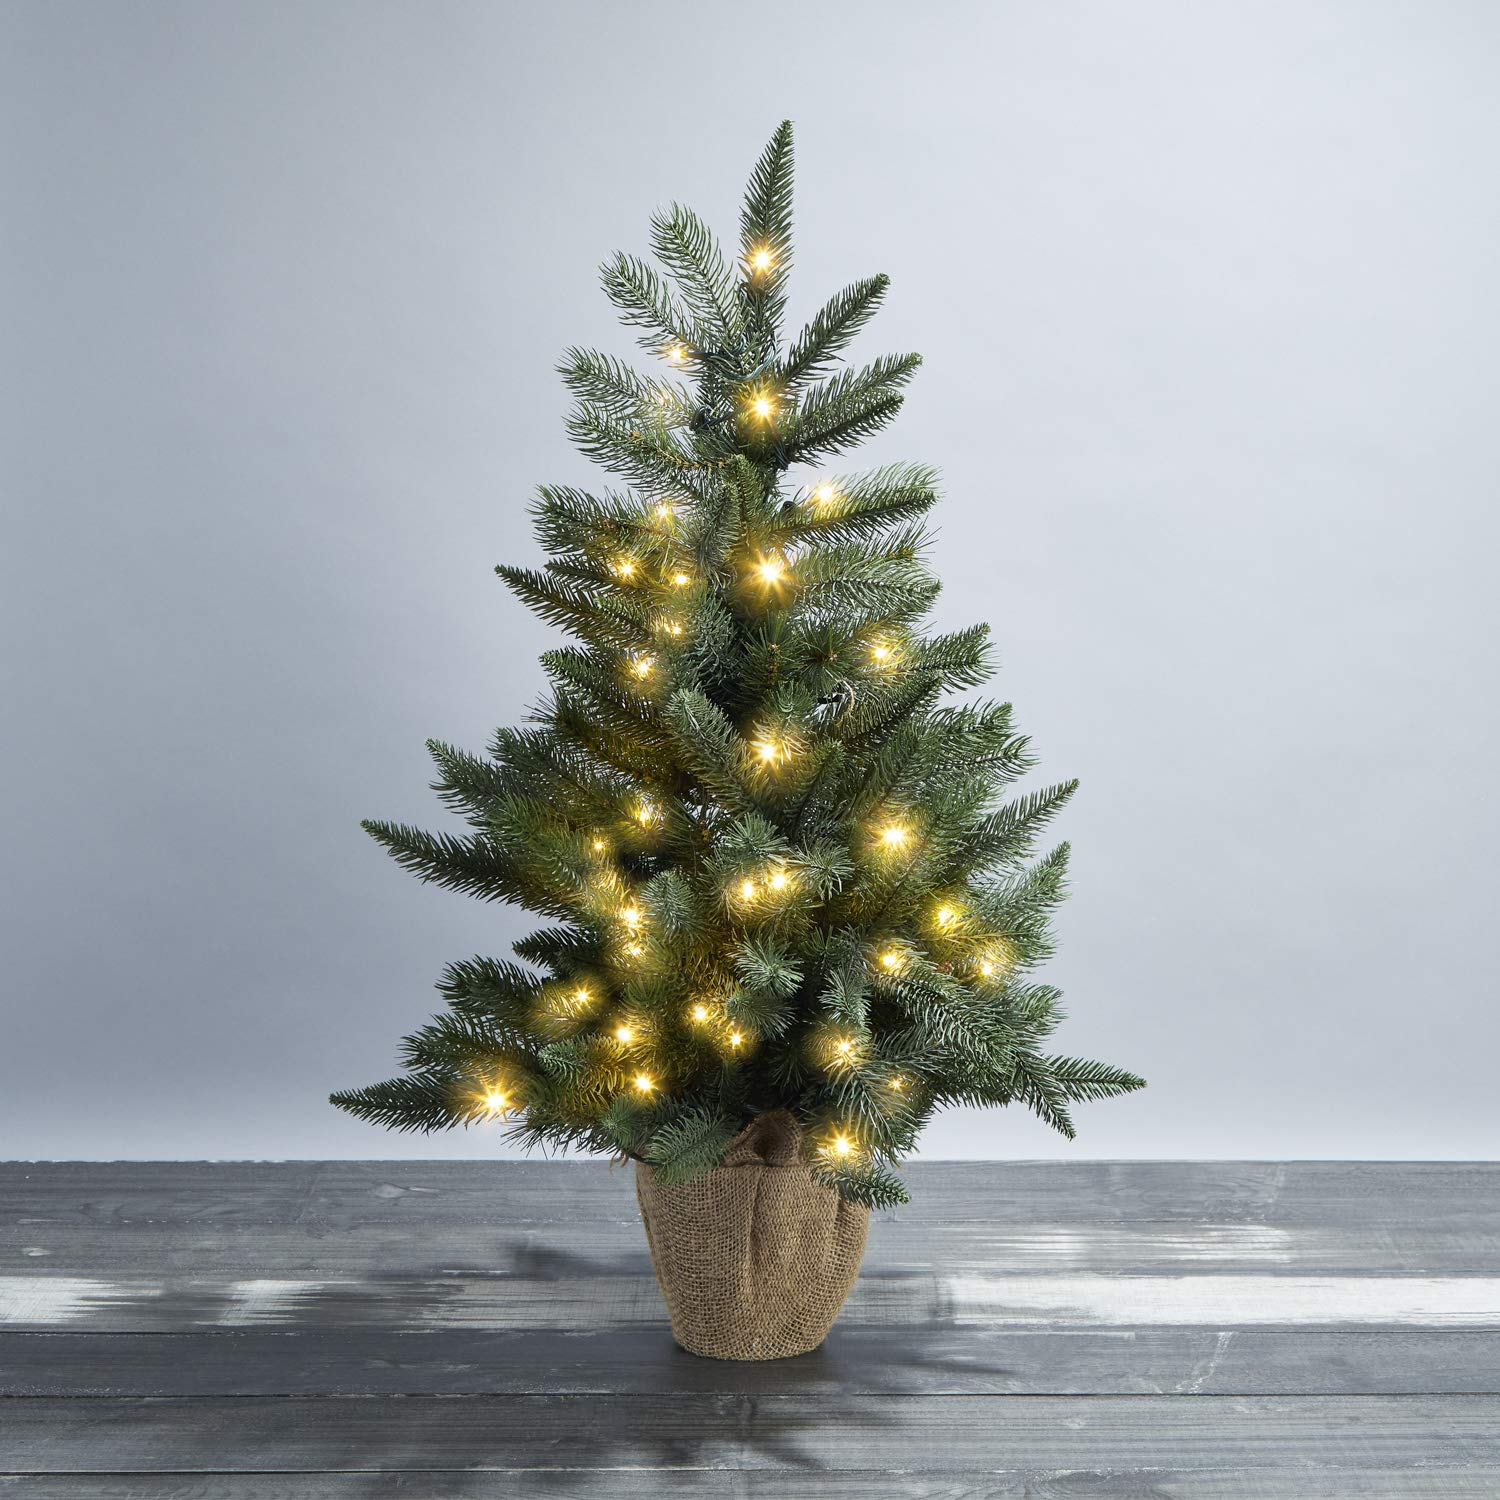 LampLust 30'' Pre-Lit Mini Christmas Tree - Pine Tree with 70 Warm White LED Lights, Decorative Burlap Base, Convertible Power Options, Both Battery Box and Plug Included